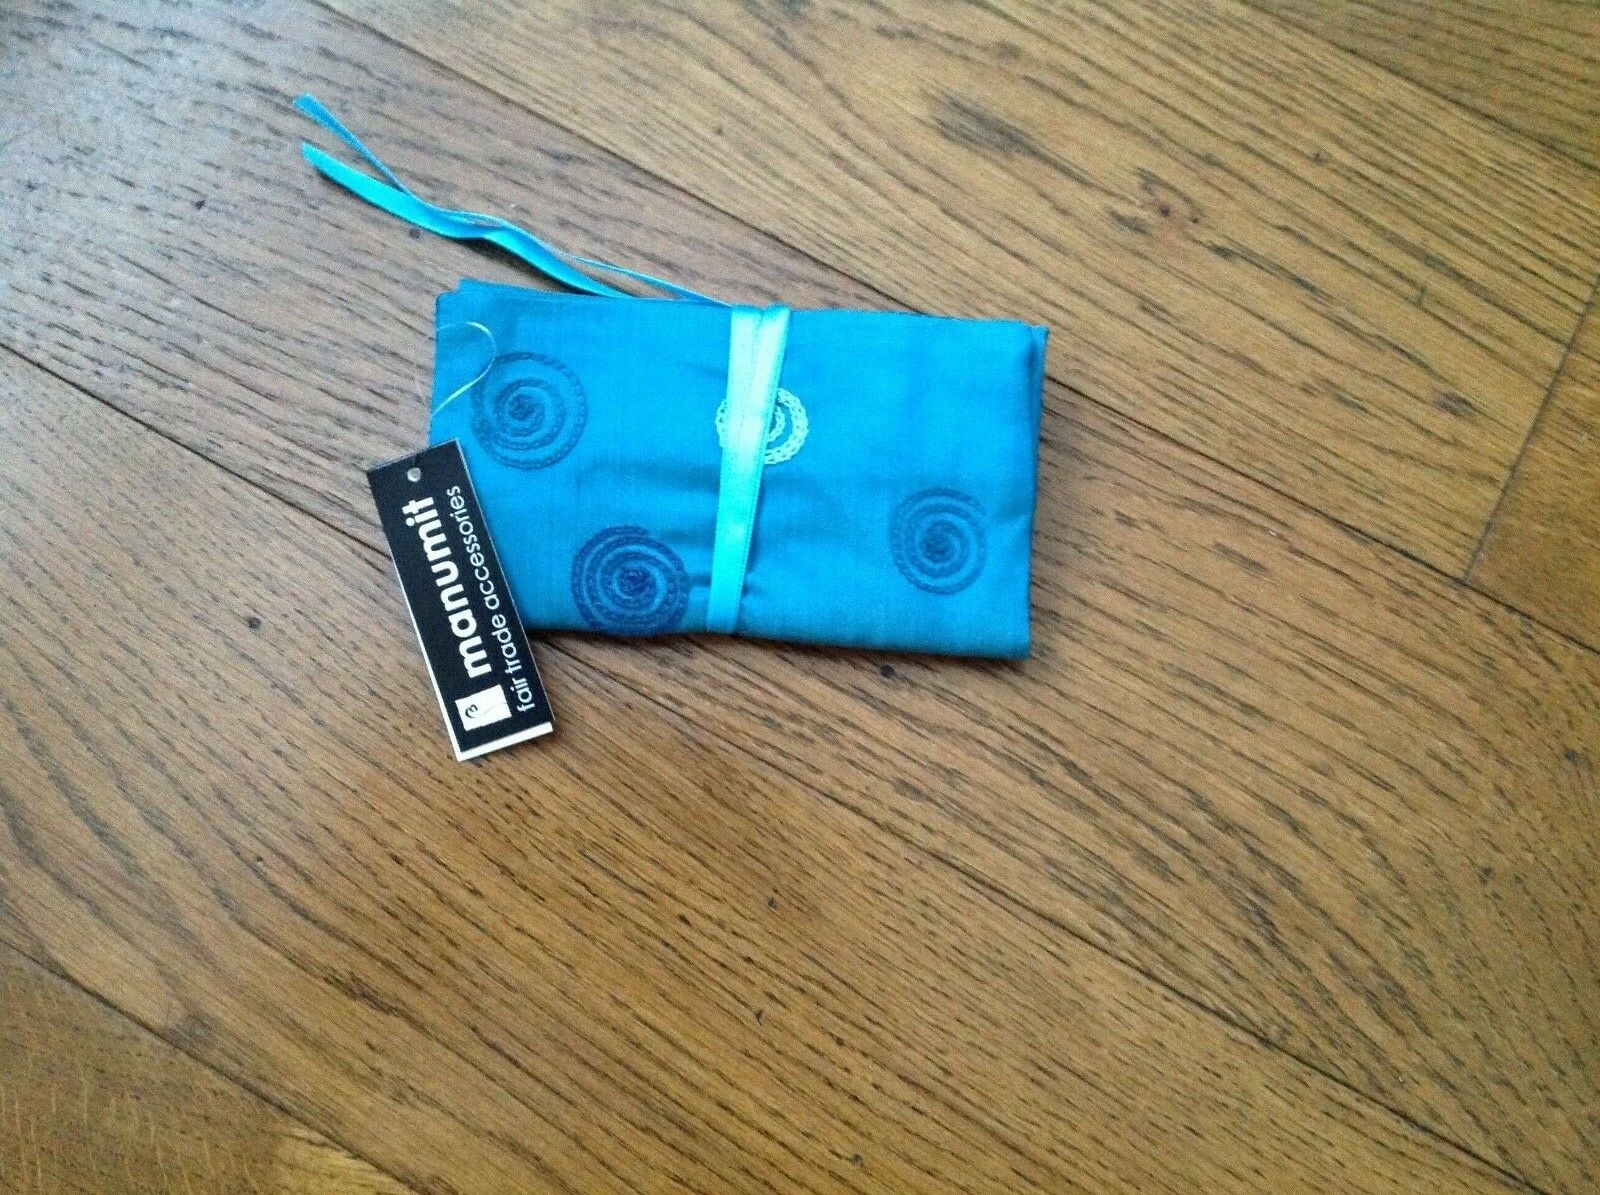 Manumit Fair Trade Jewellery Roll in Teal Blue with embroidered Circles in Blues